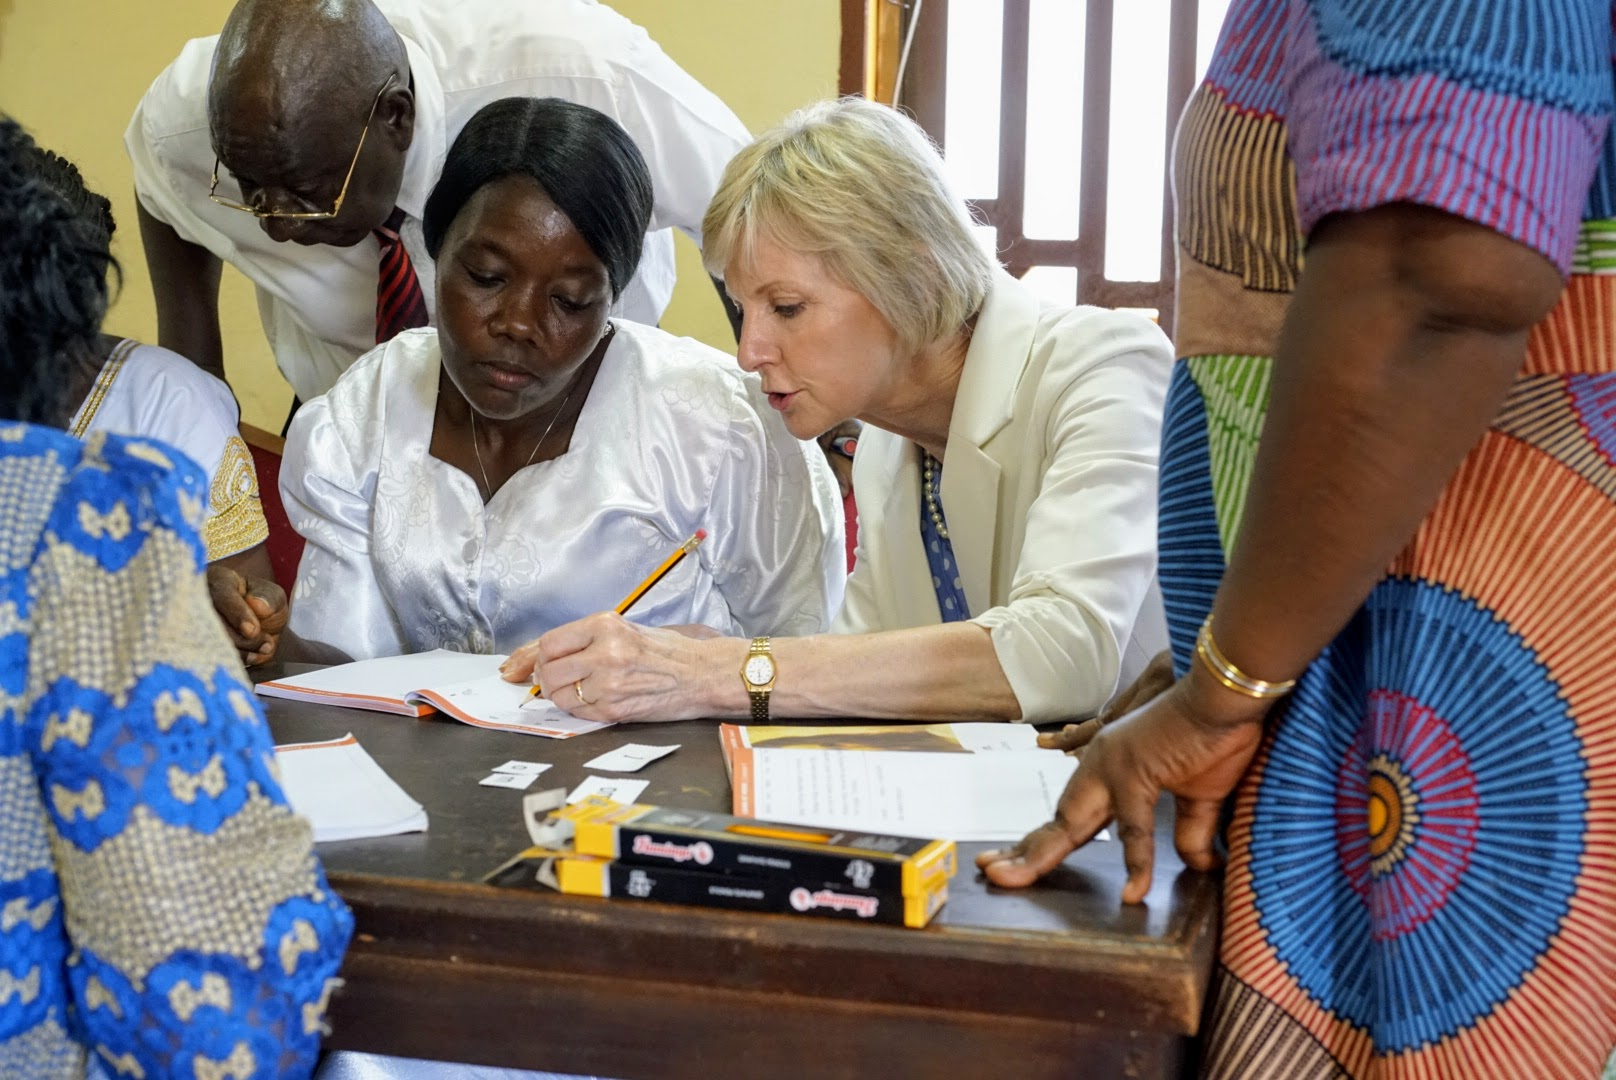 Sister Jean B. Bingham goes through some of the Gospel Literacy pilot program materials with members in Sierra Leone while visiting to observe the implementation of the Gospel Literacy program. Sister Bingham, Relief Society general president, visited the West African country June 5 through June 16, 2019.